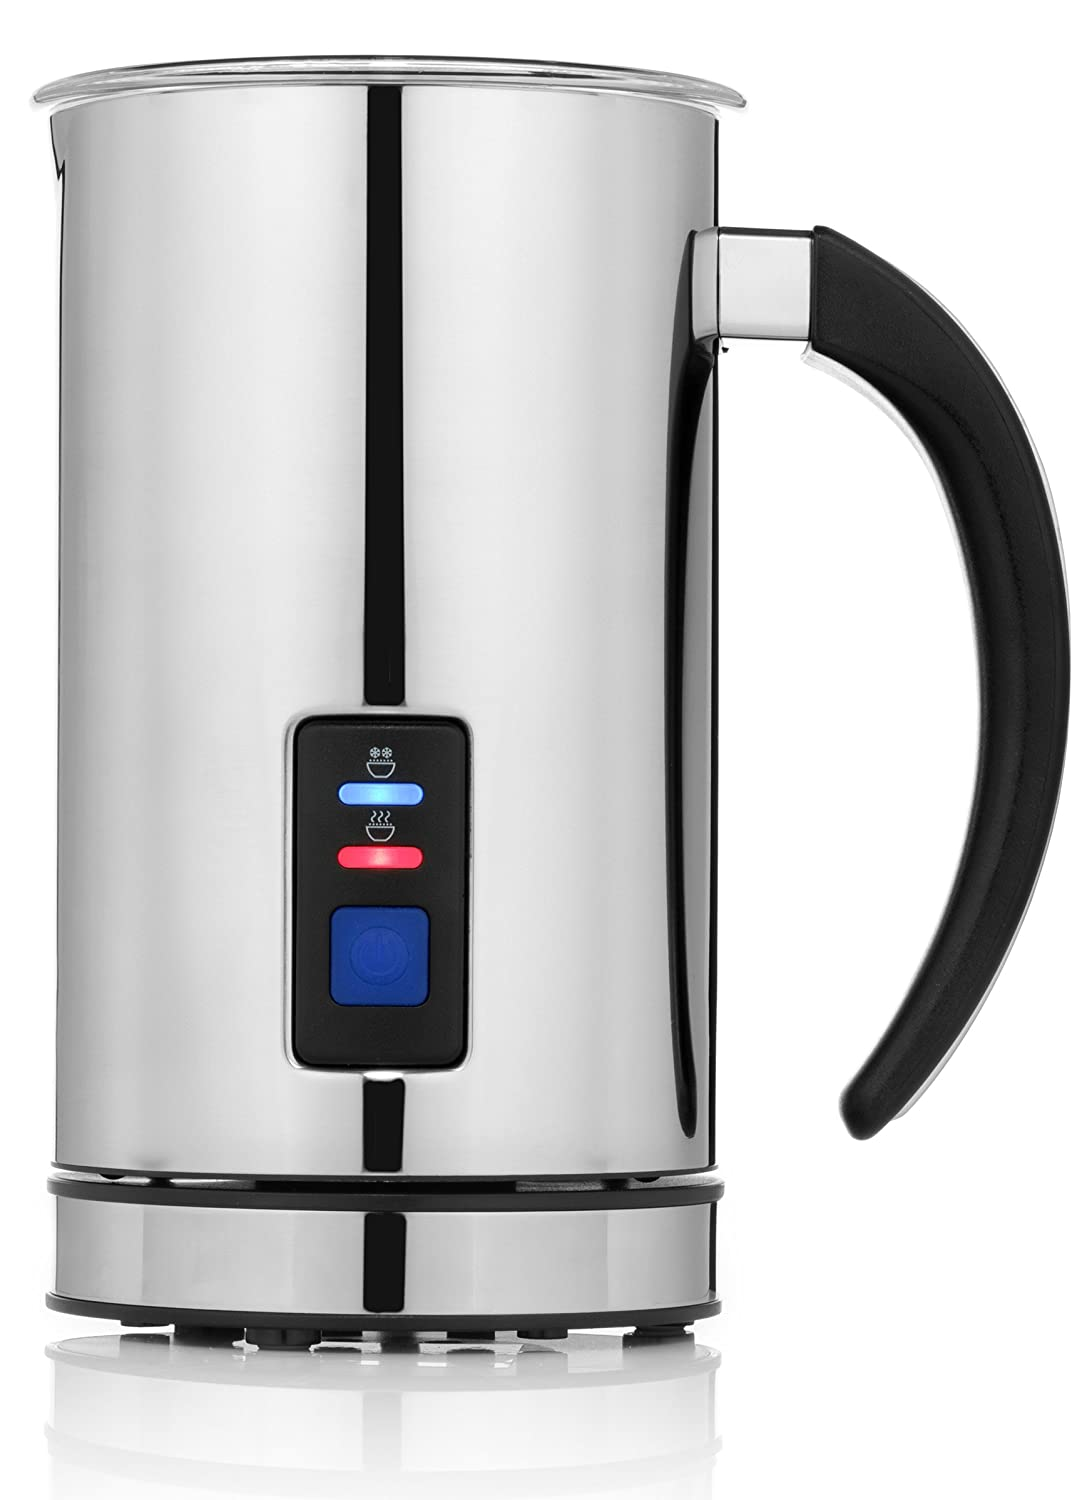 Chefs Star Premier Automatic Milk Frother, Heater and Cappuccino Maker Dakota Trading (Kitchen) MM503